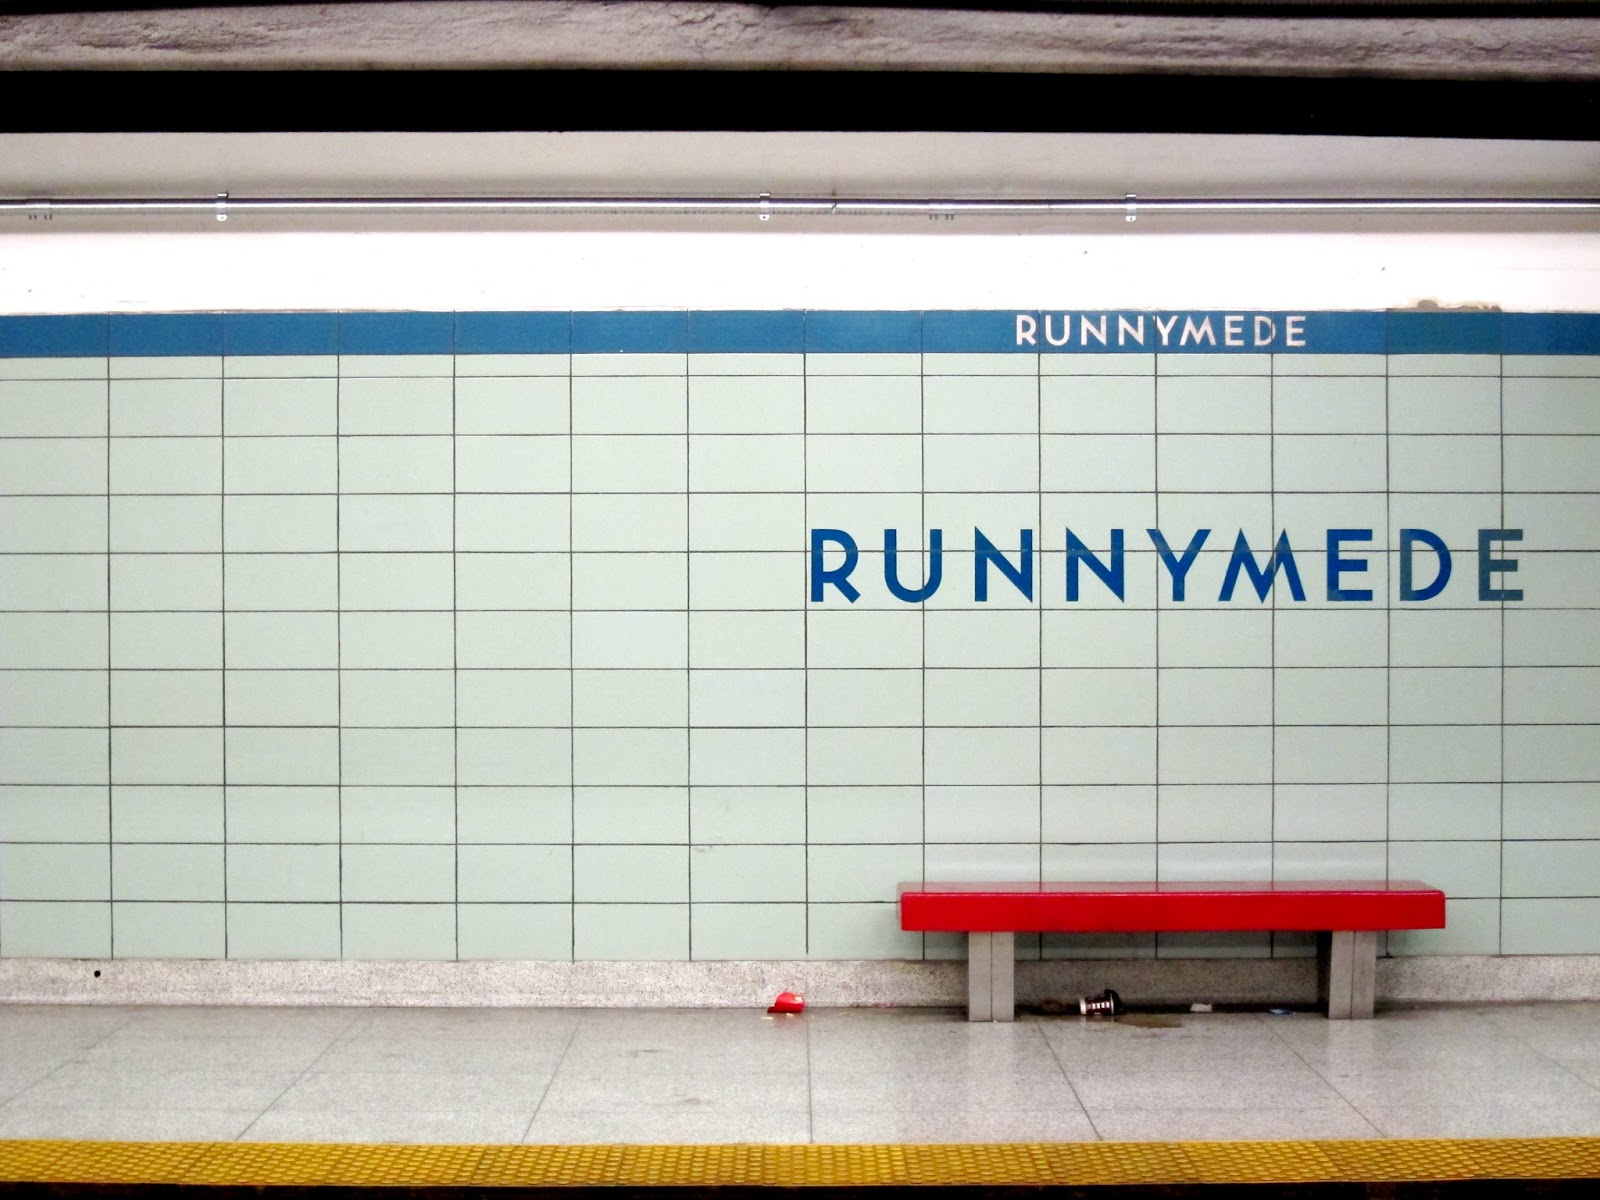 Runnymede station platform